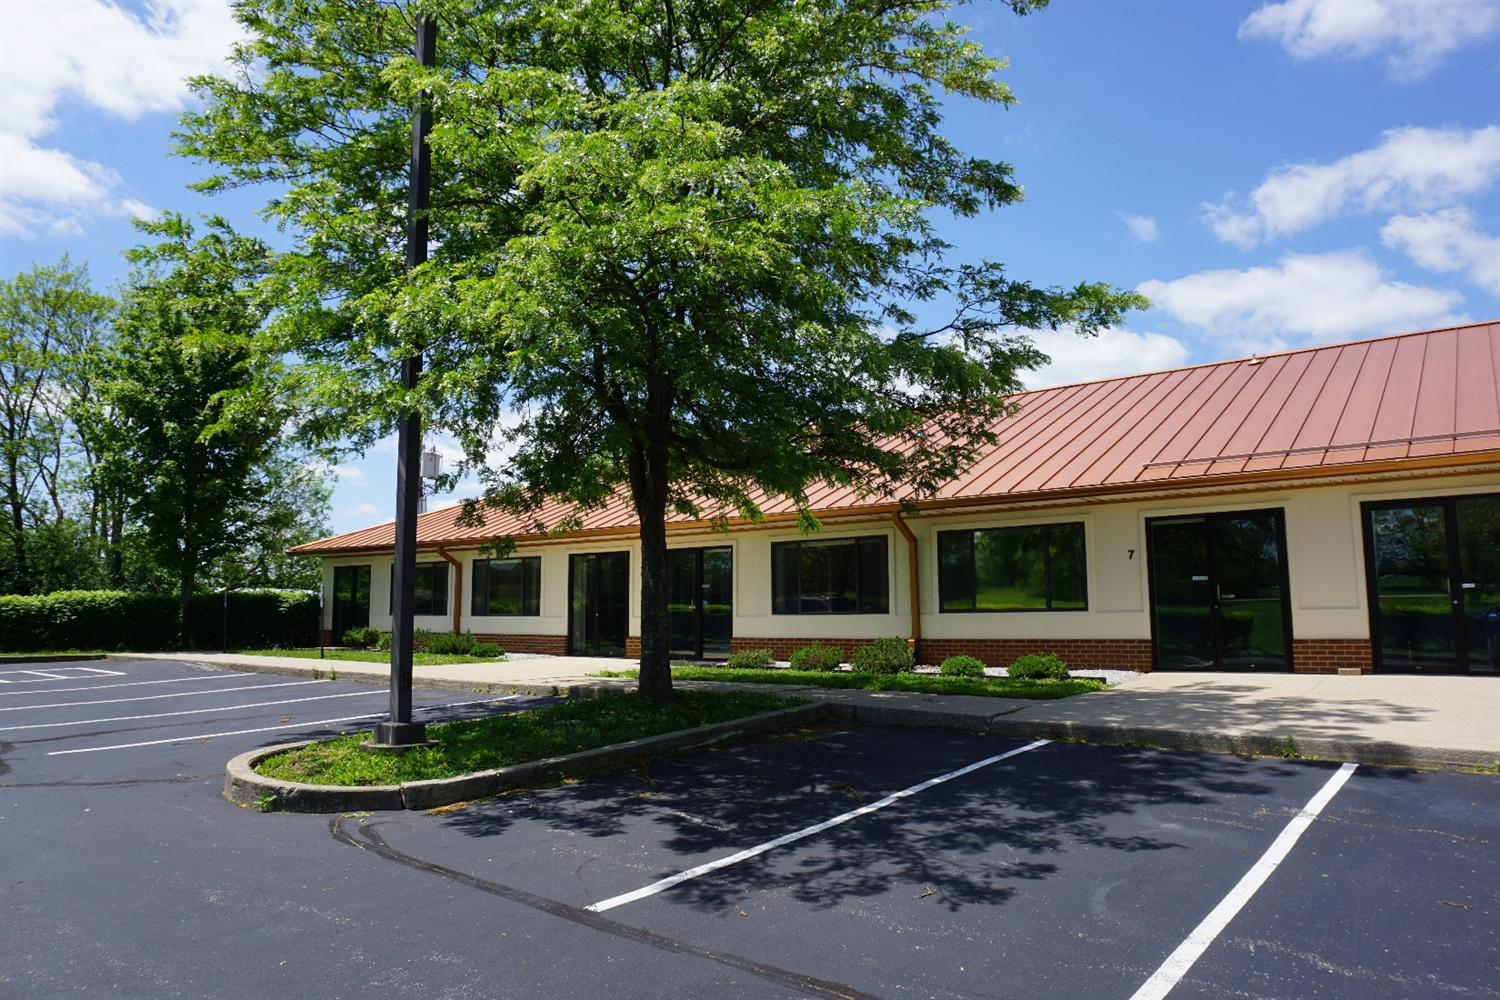 Large%204,000%20sq.%20ft.%20commercial/office%20space%20located%20right%20off%20Main%20St%20and%20US-27%20Bypass%20beside%20Sutherland%20Chevrolet,%205%20Miles%20south%20of%20Lexington.%20Multiple%20Offices,%20conference%20room,%20Kitchen/%20Break%20Area%20and%20Bathrooms.%20Tenant%20is%20responsible%20for%20Gas,%20Electric,%20water($75),%20Trash%20included.%20No%20CAM%20(Common%20area%20maintenance)%20Fees!%20%20Can%20sub-divide%20if%20needed.